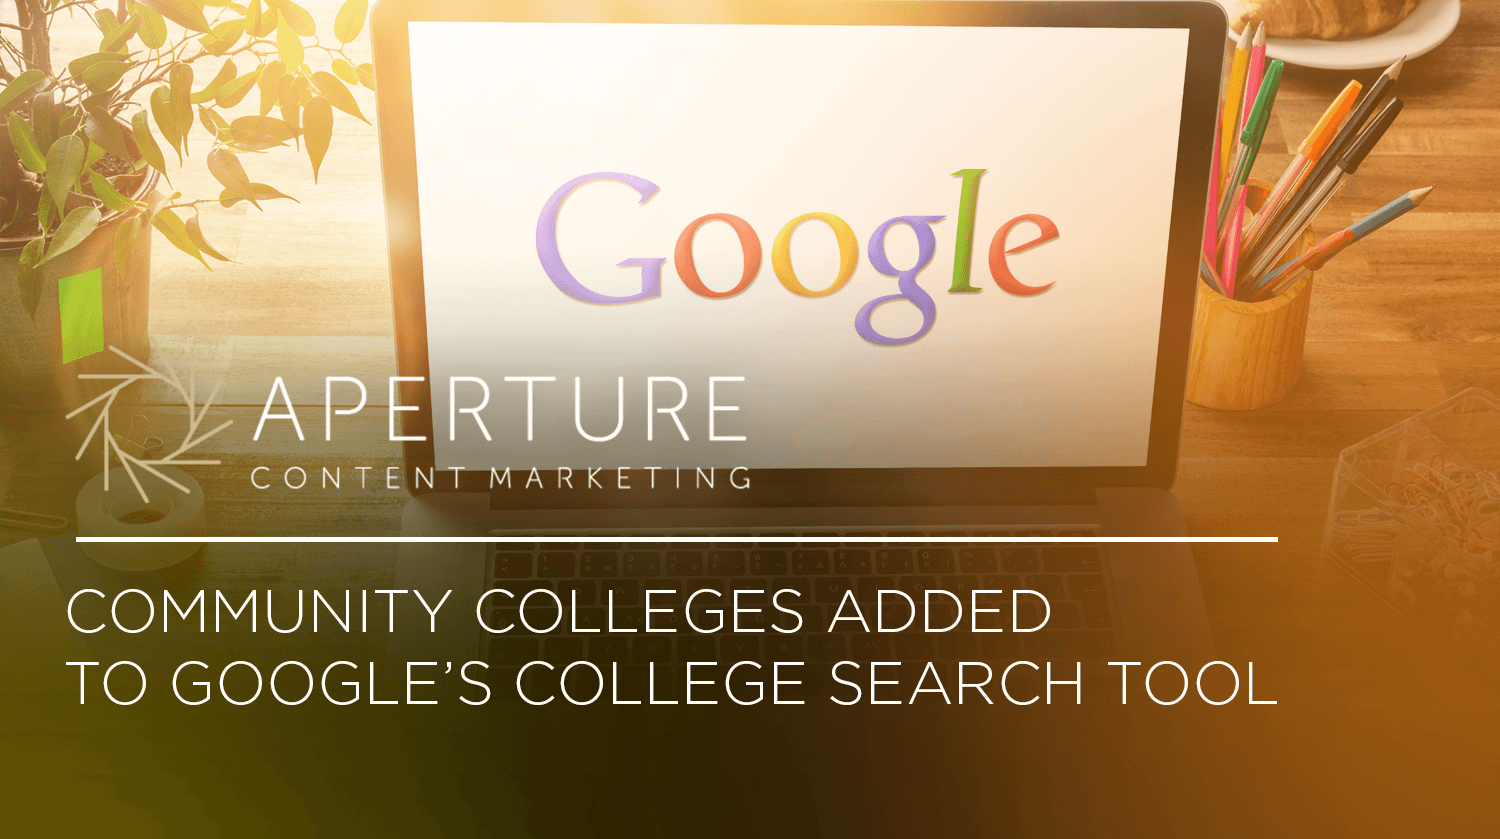 Community Colleges Added to Google's College Search Tool